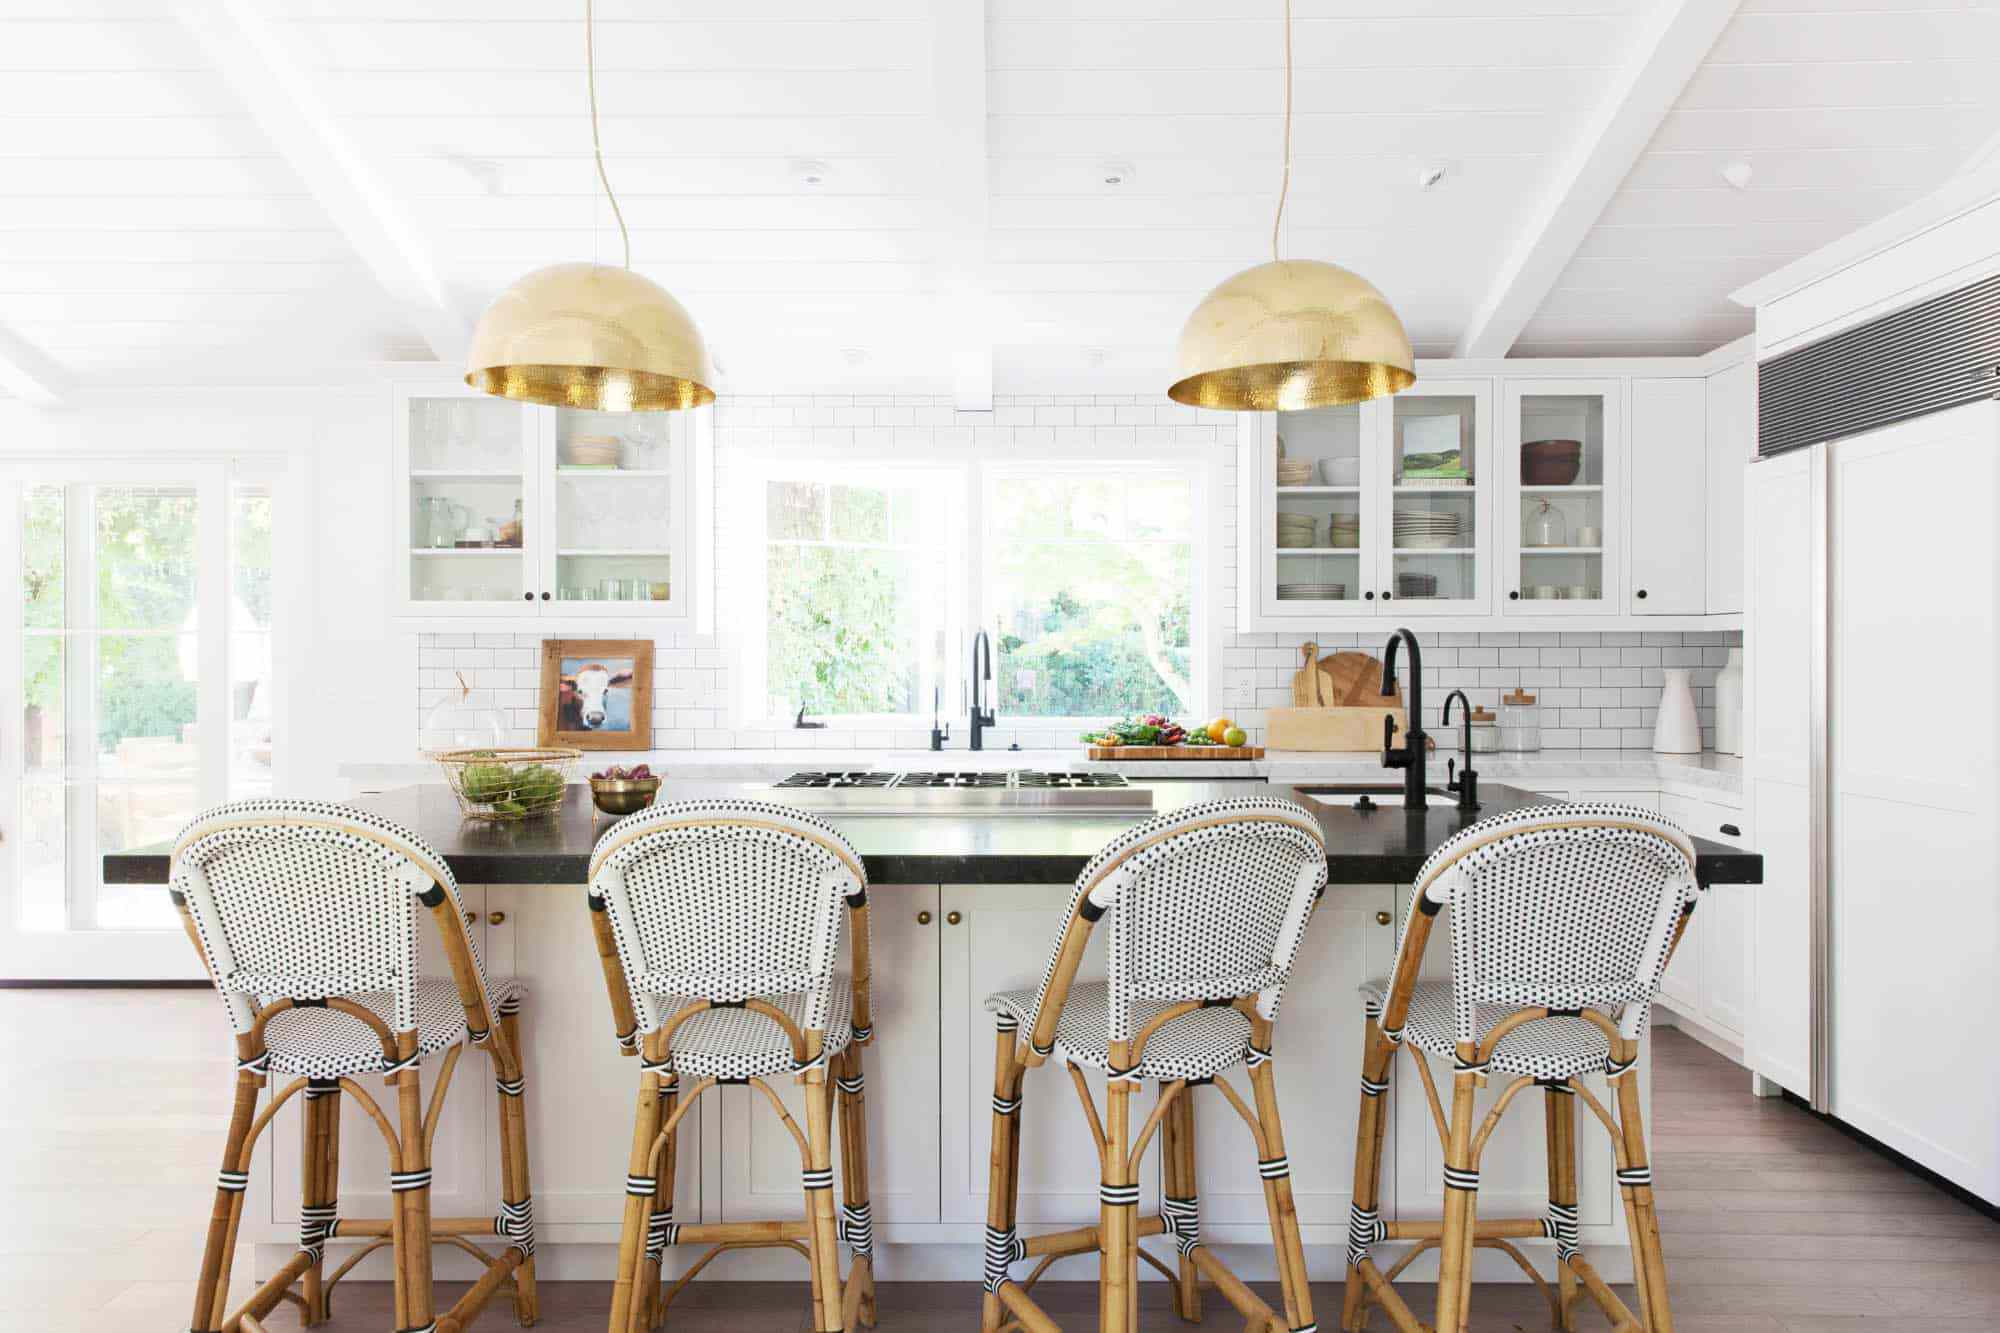 An all-white kitchen with a cabinet-lined kitchen island